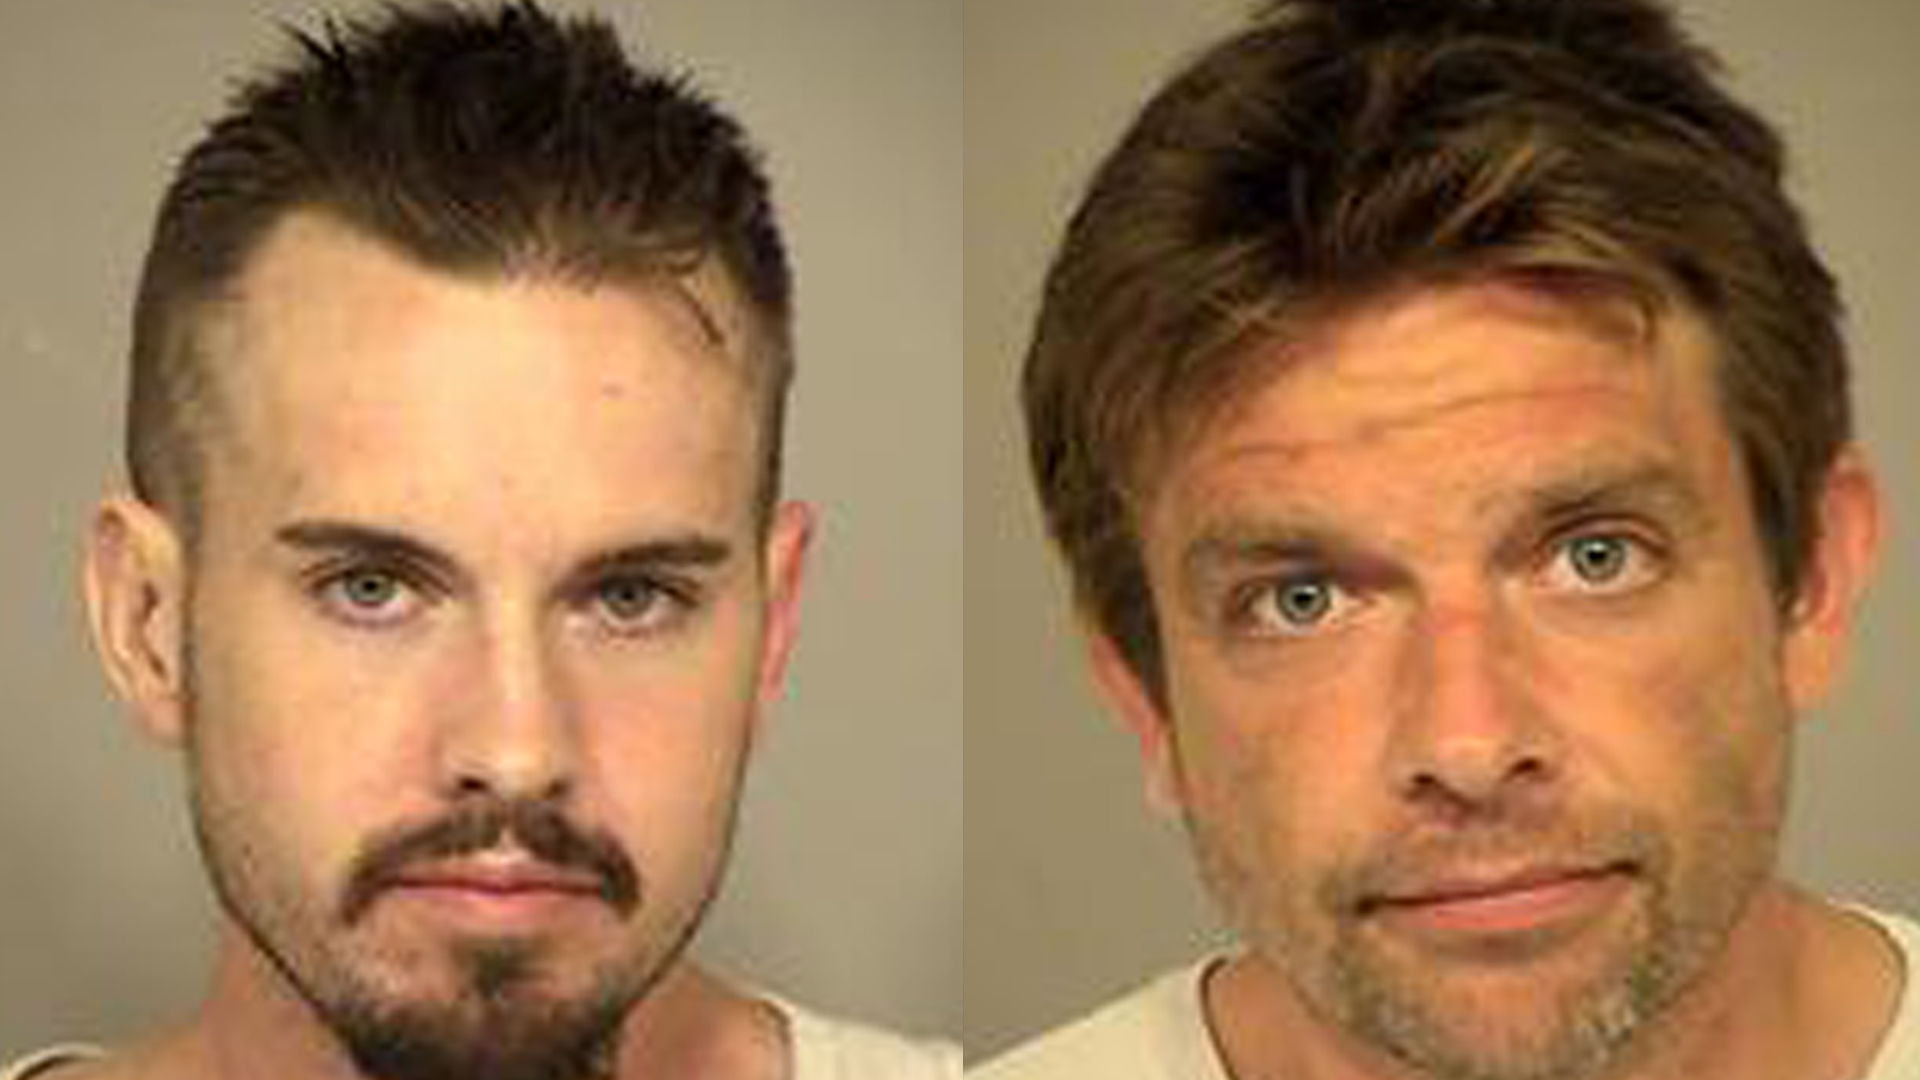 Patrick Budge and Evan Anderson, both of Ventura, are seen in photos released by the Ventura County Sheriff's Office on Sept. 24, 2019.